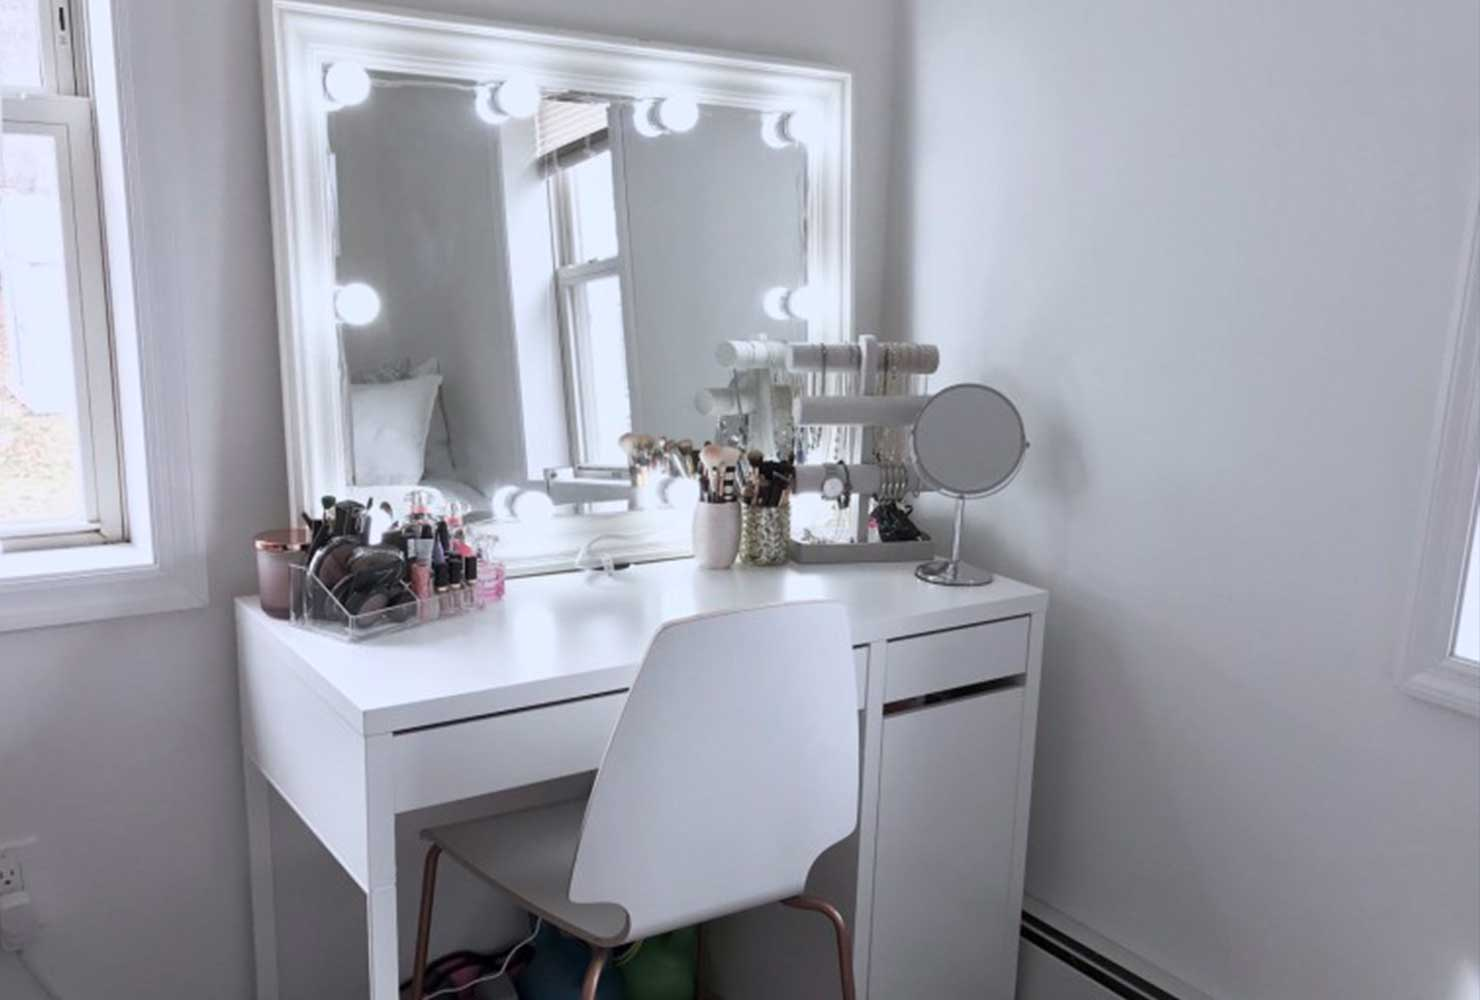 35 Makeup Room Ideas To Brighten Your Morning Routine ... on Makeup Room Ideas  id=22925